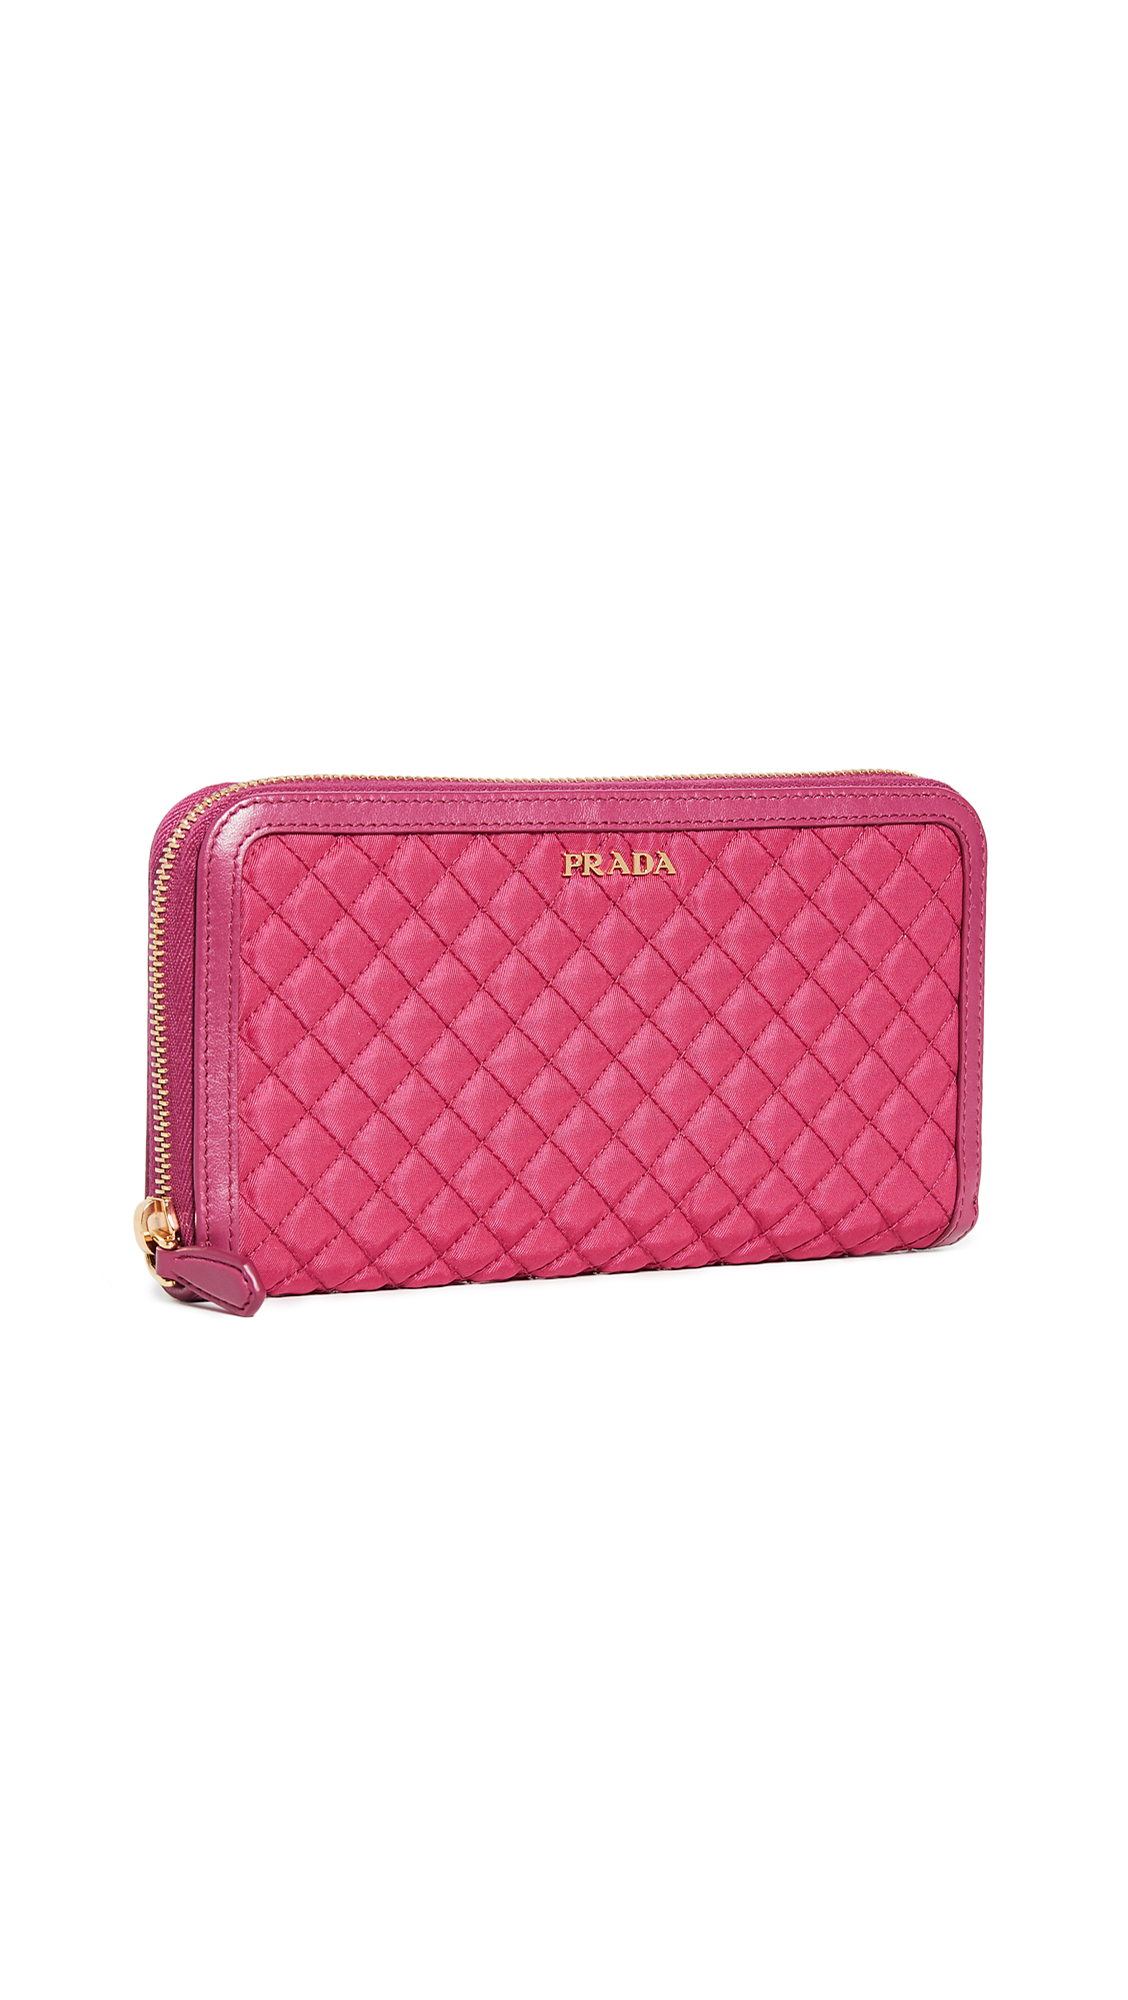 06db41f47147 WHAT GOES AROUND COMES AROUND | What Goes Around Comes Around Prada Pink  Tessuto Zip Around